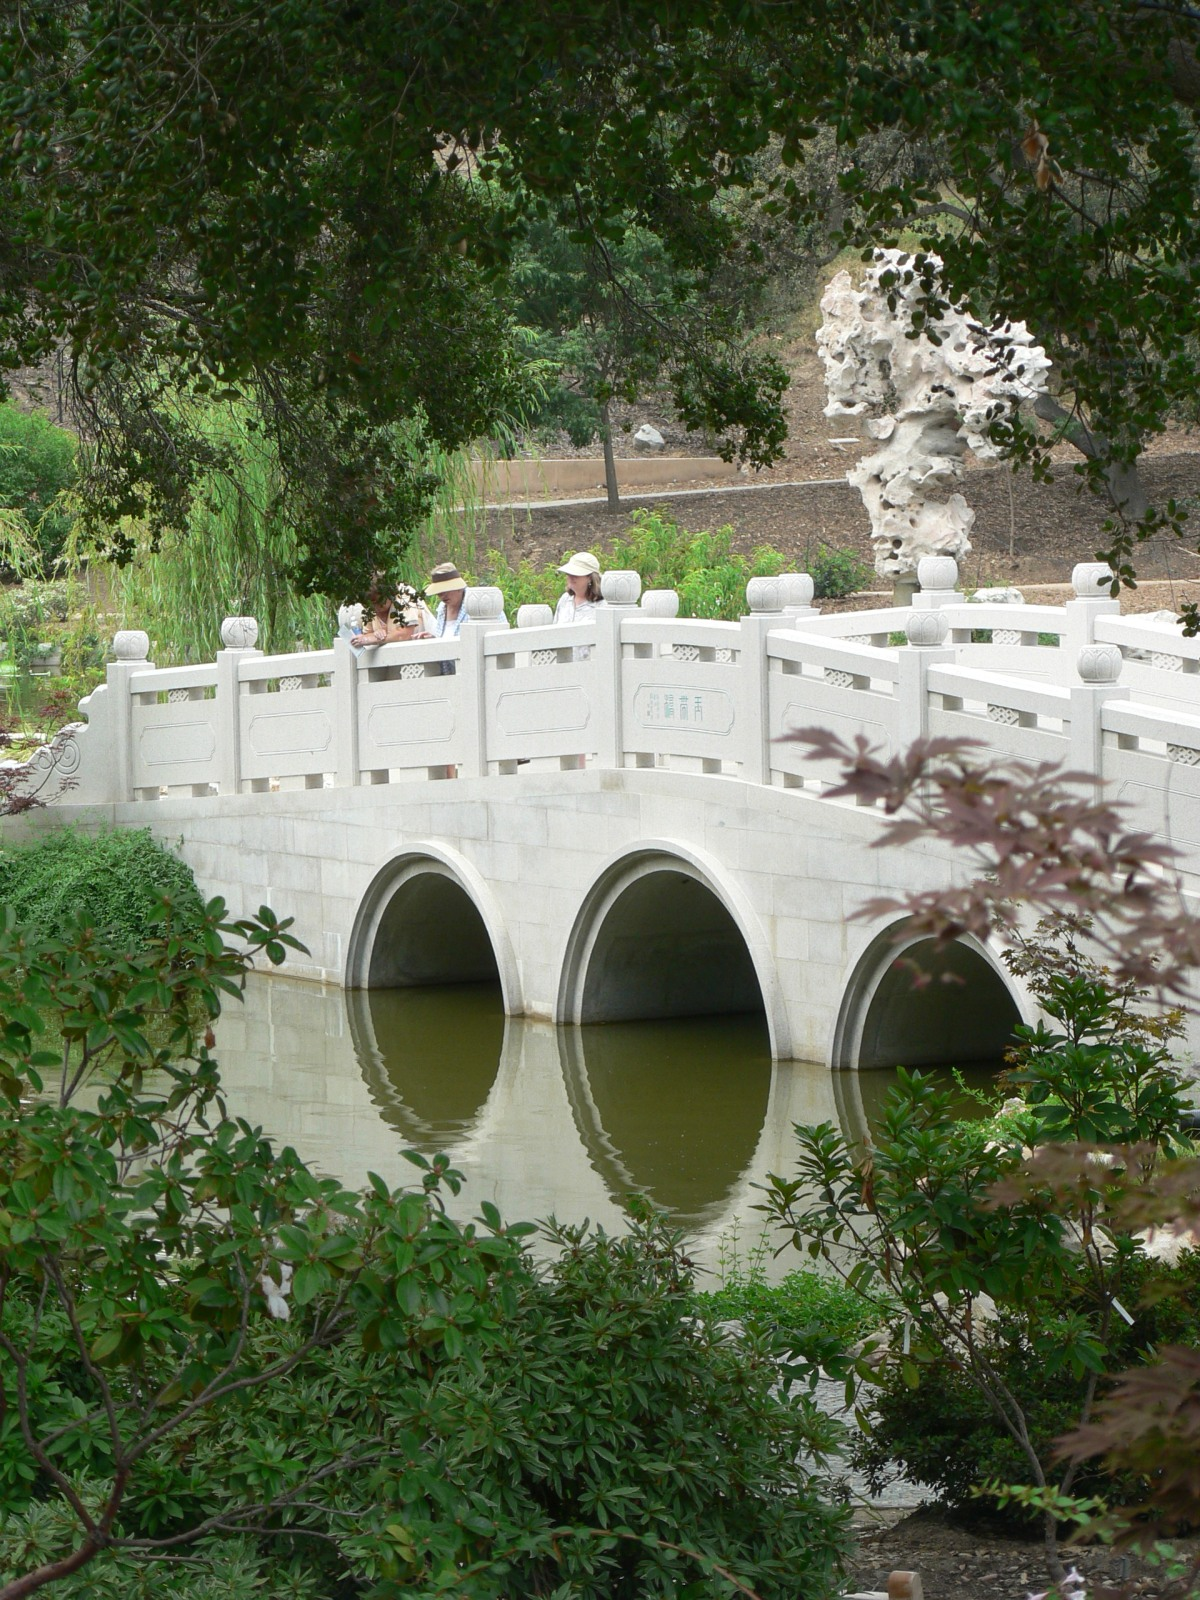 File:Chinese Garden bridge at Huntington Library.jpg - Wikimedia Commons